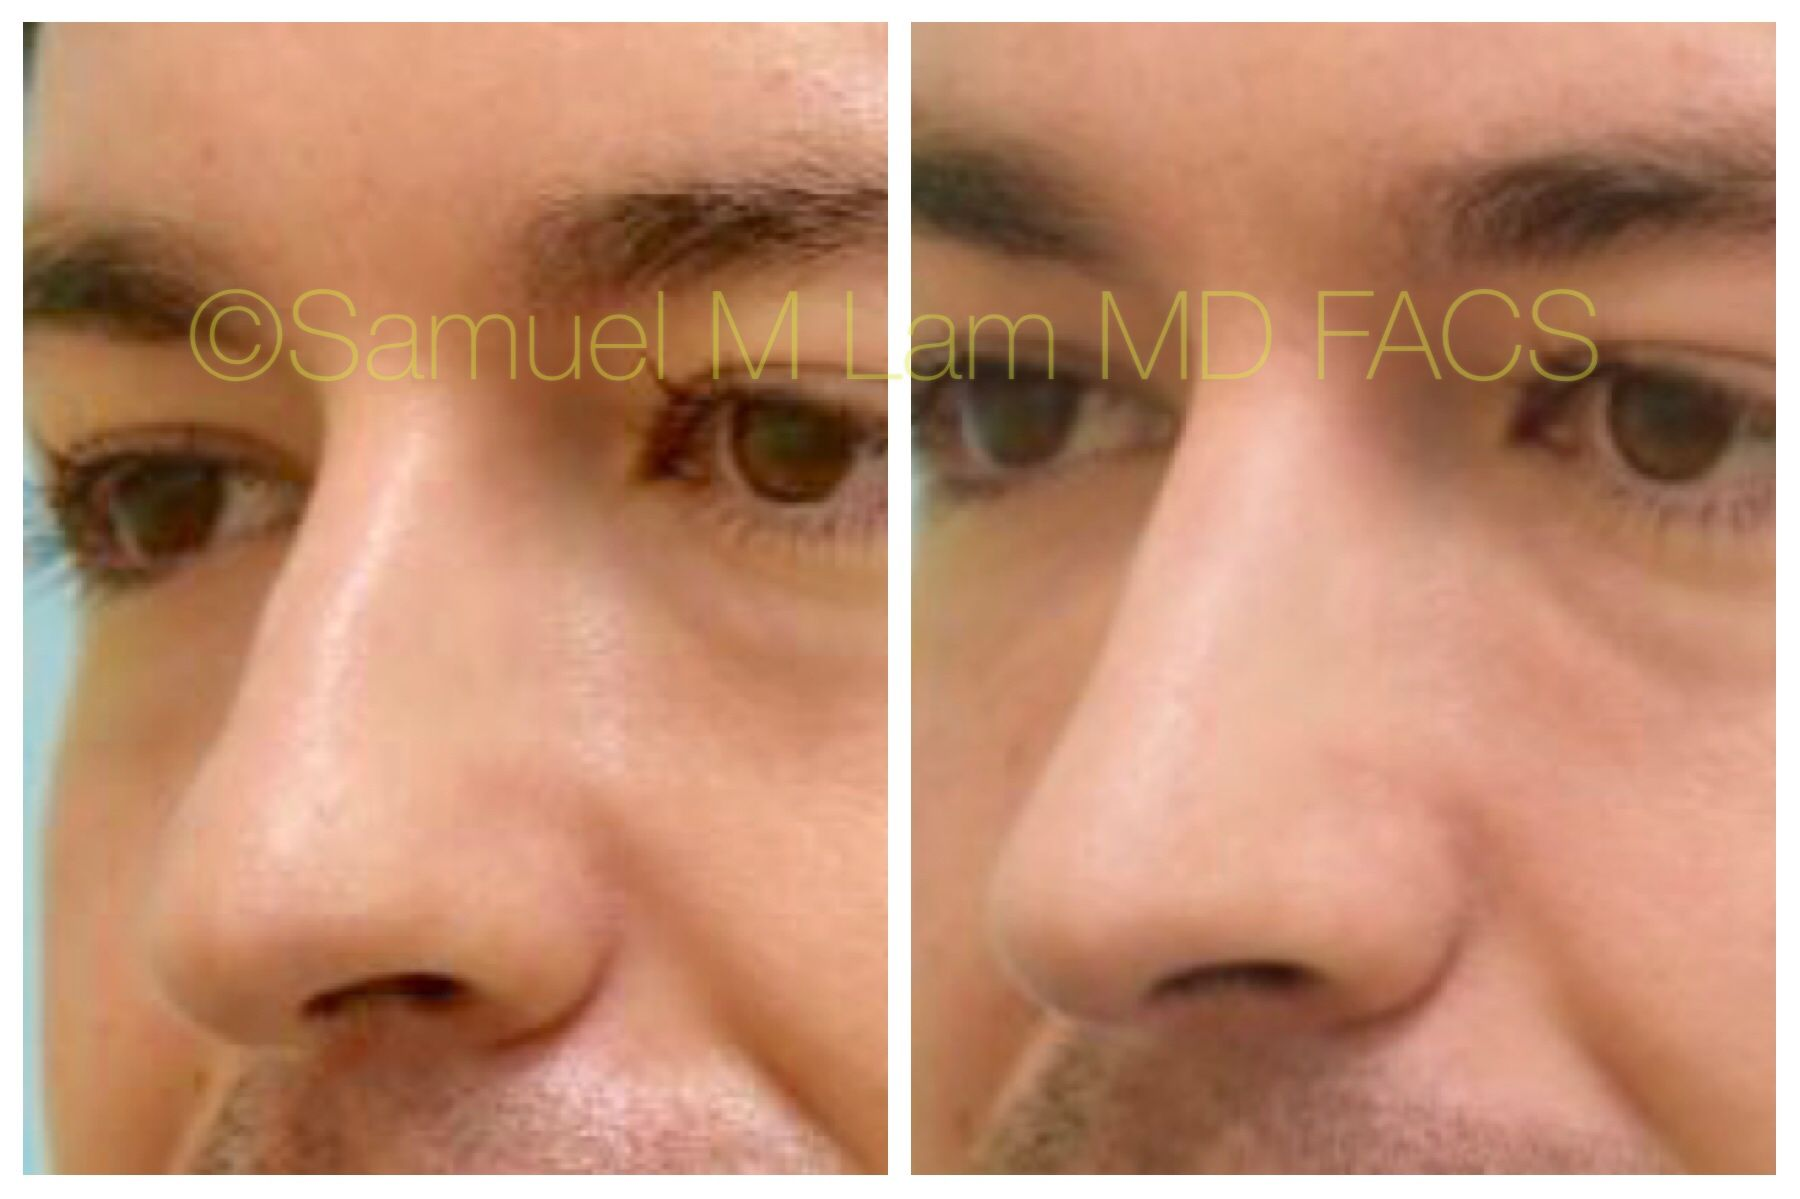 This gentleman is shown before and after cosmetic rhinoplasty